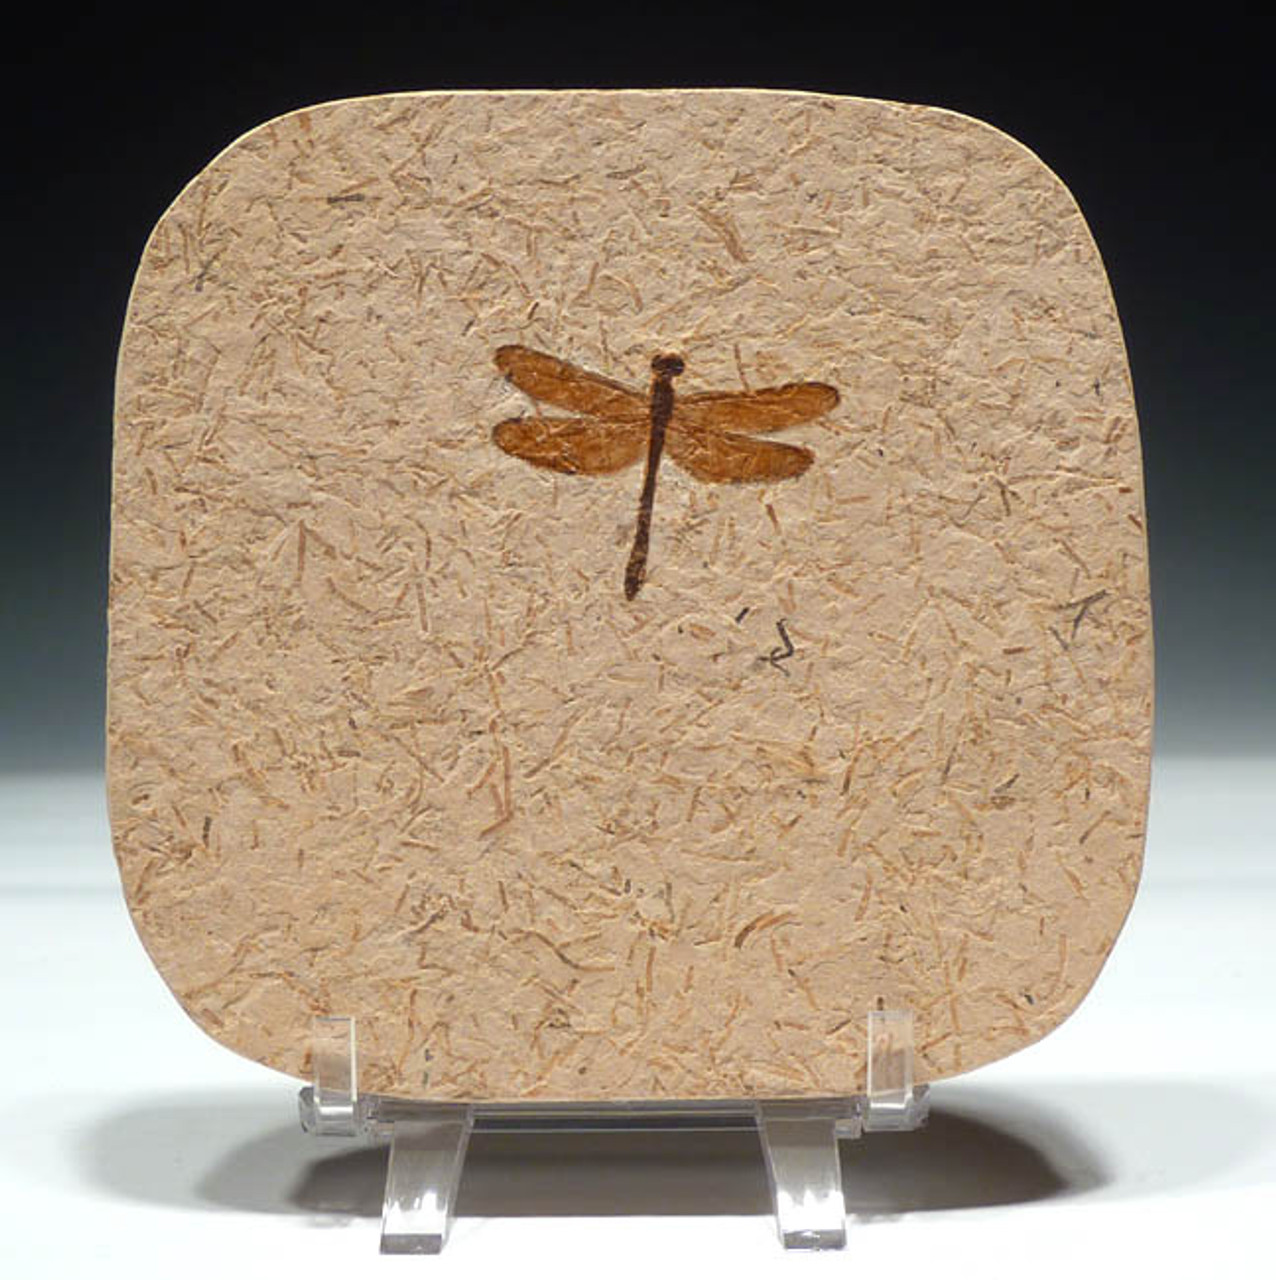 IN004 - CRETACEOUS DRAGONFLY INSECT FOSSIL OF EXCEPTIONAL COLOR AND DETAIL